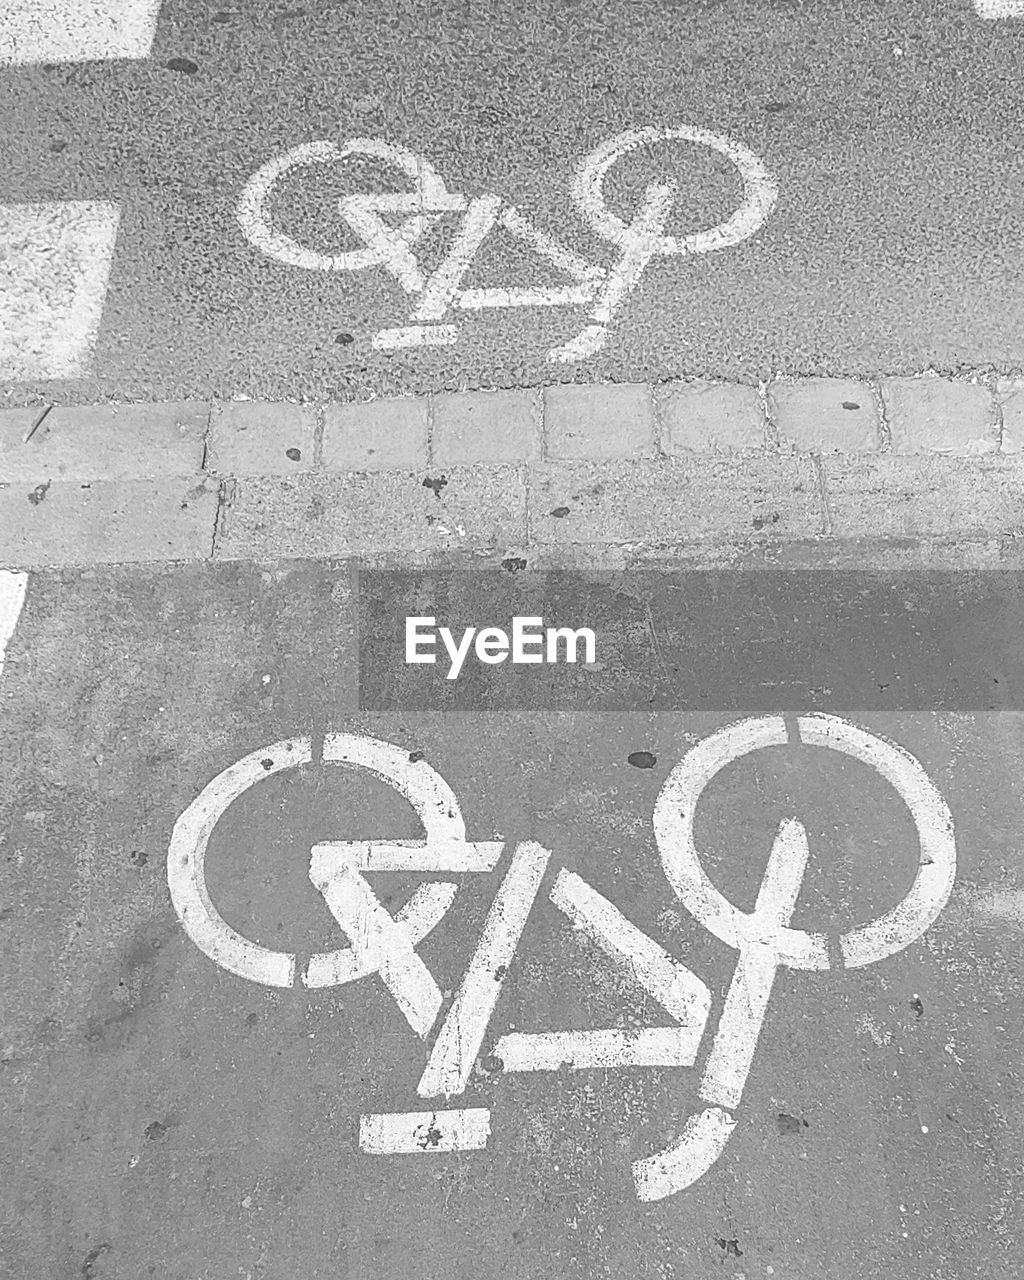 communication, sign, road, text, marking, symbol, road marking, bicycle lane, western script, guidance, high angle view, no people, capital letter, day, city, information, transportation, road sign, street, information sign, message